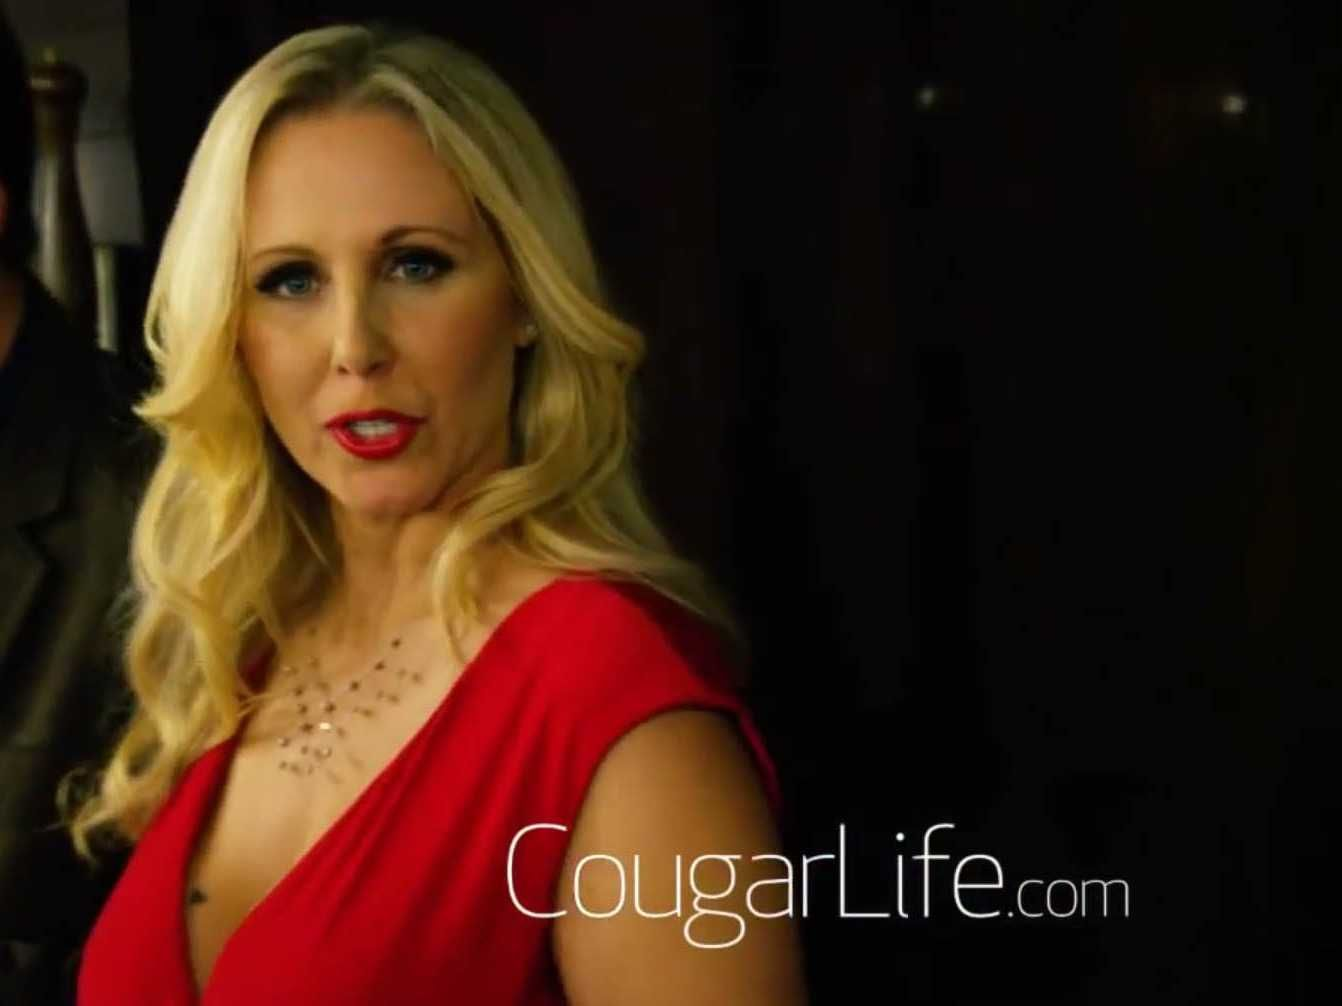 Are free cougar dating sites free?